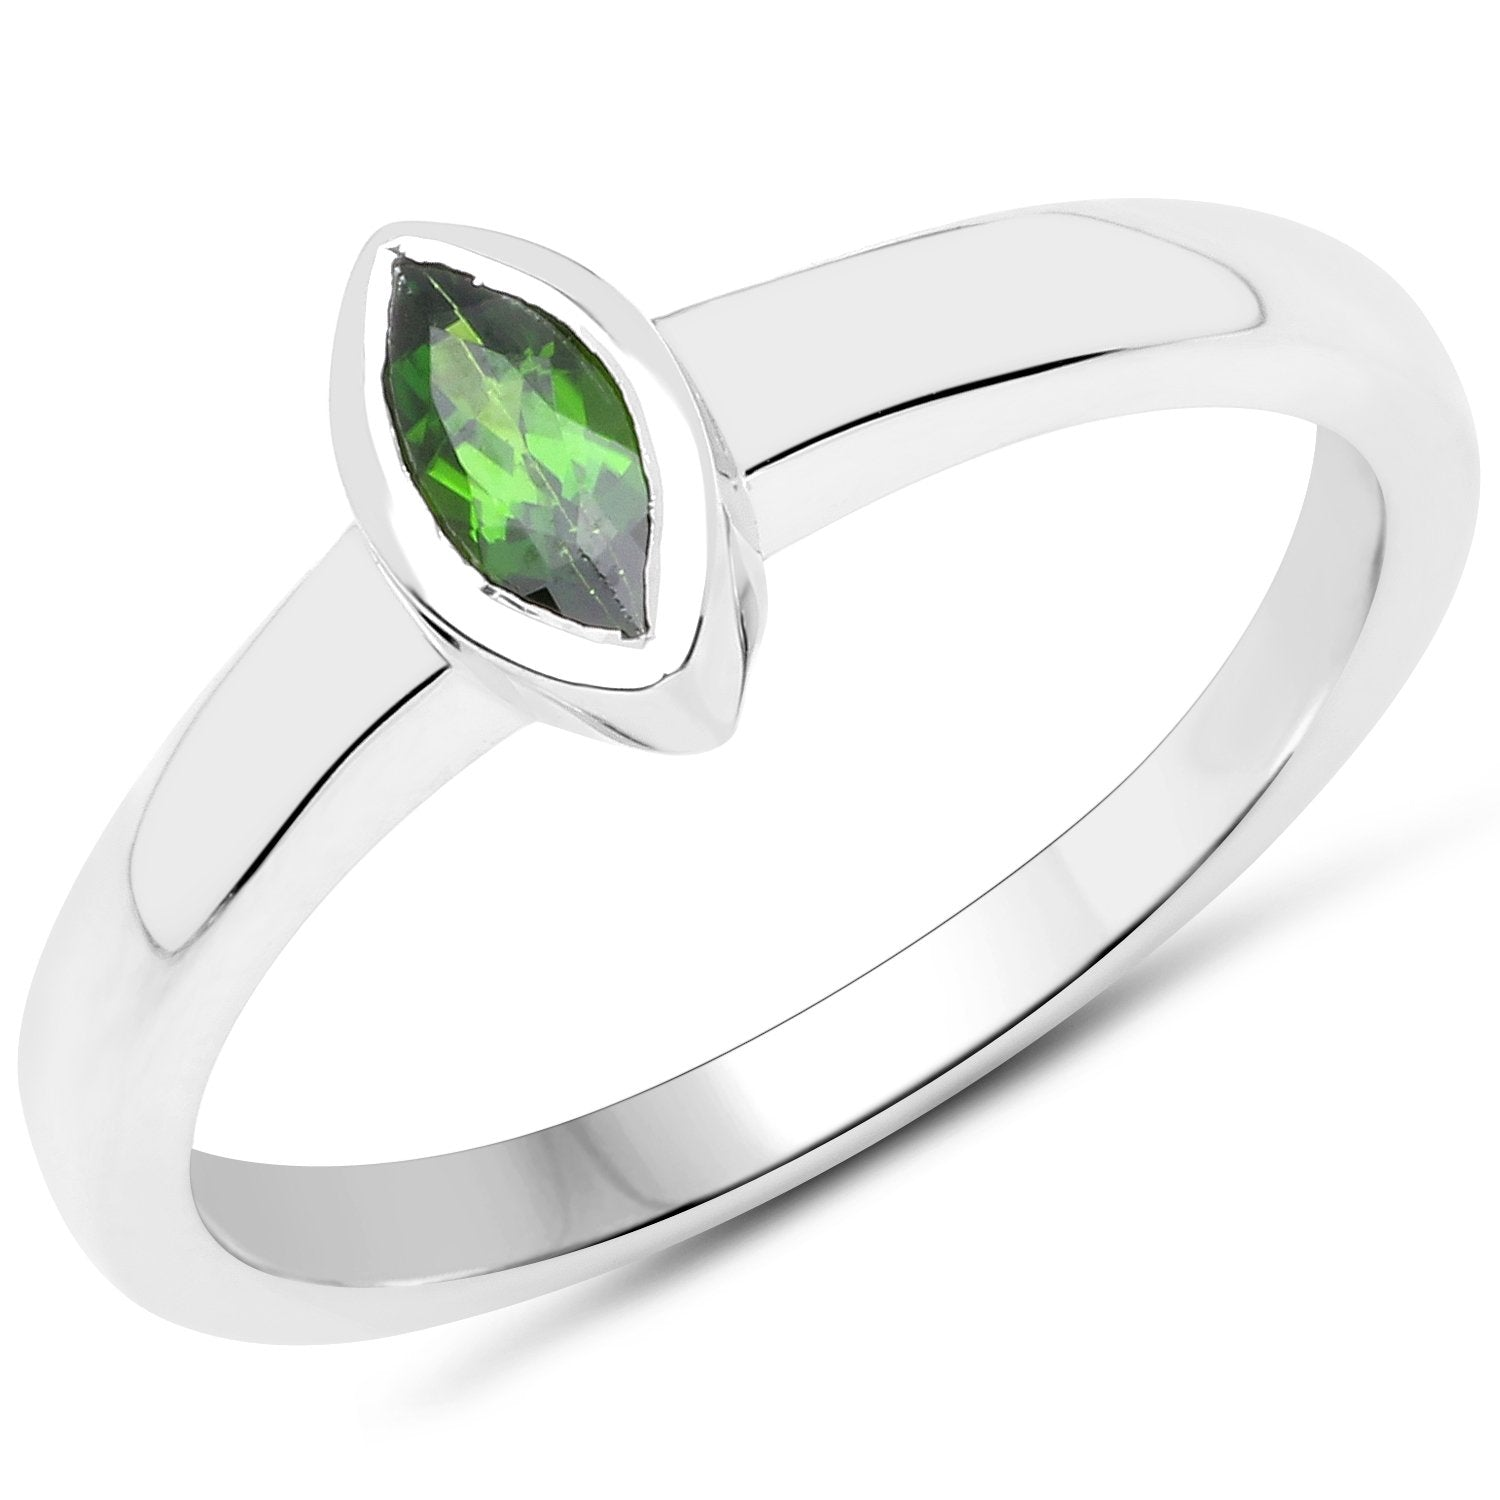 LoveHuang 0.23 Carats Genuine Chrome Diopside Marquise Bezel Ring Solid .925 Sterling Silver With Rhodium Plating